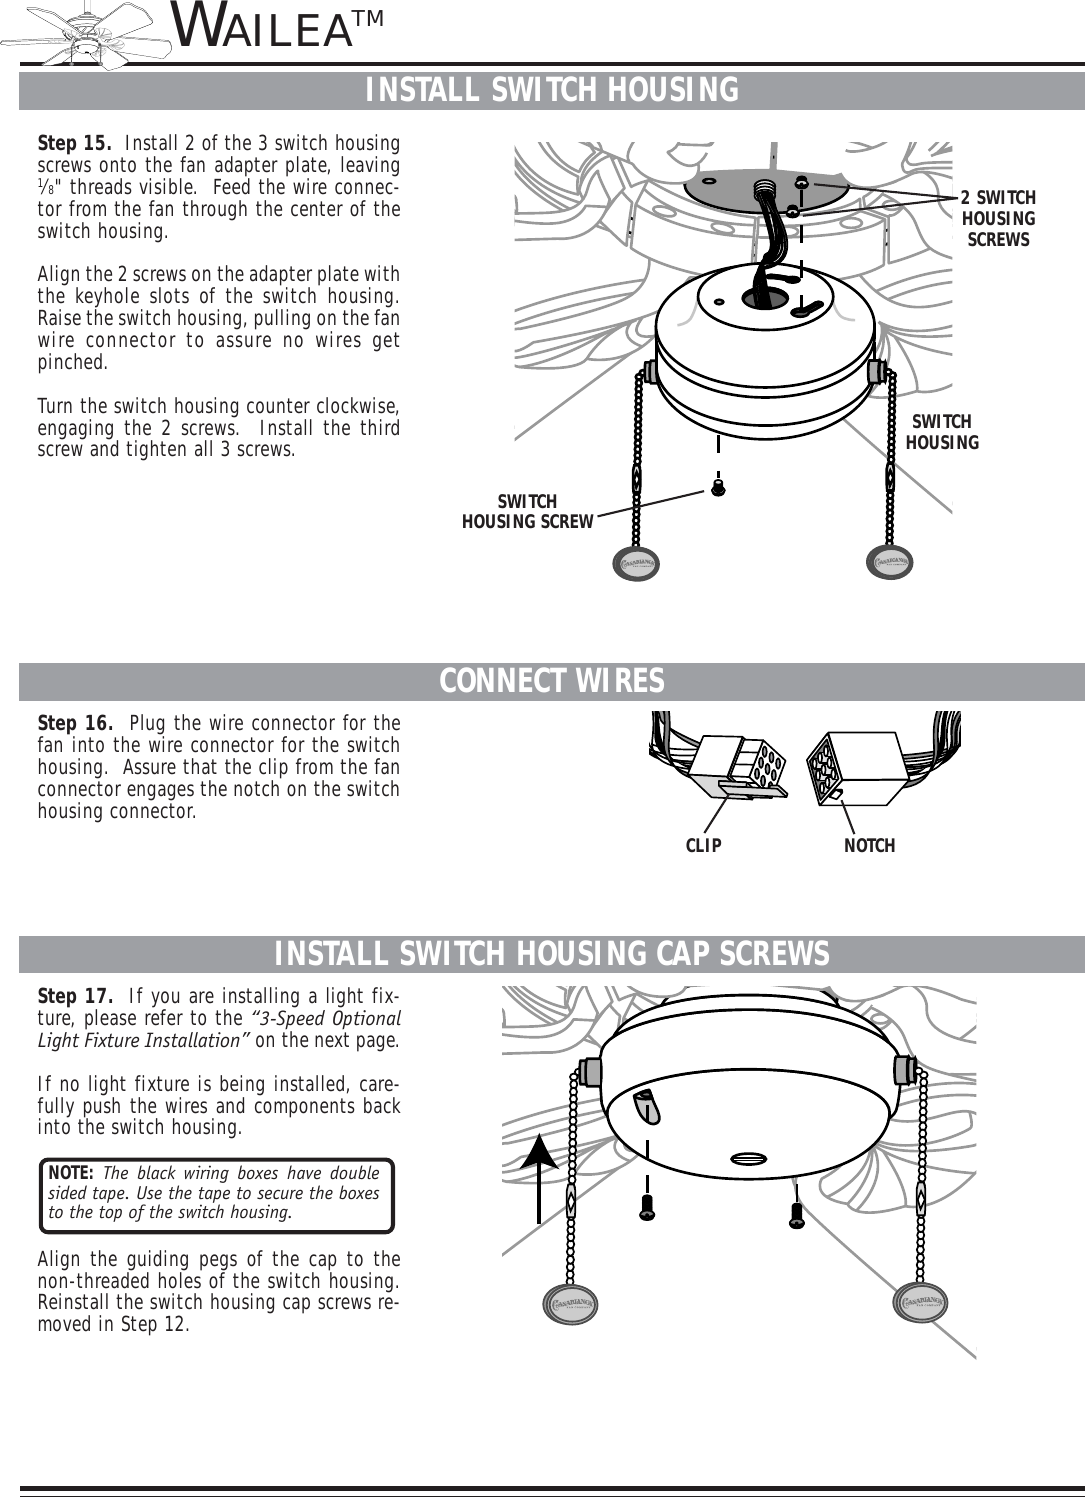 Casablanca Fan Company Wailea Ceiling 41uxxd Users Manual Fans With Light Wiring Diagram Page 8 Of 10